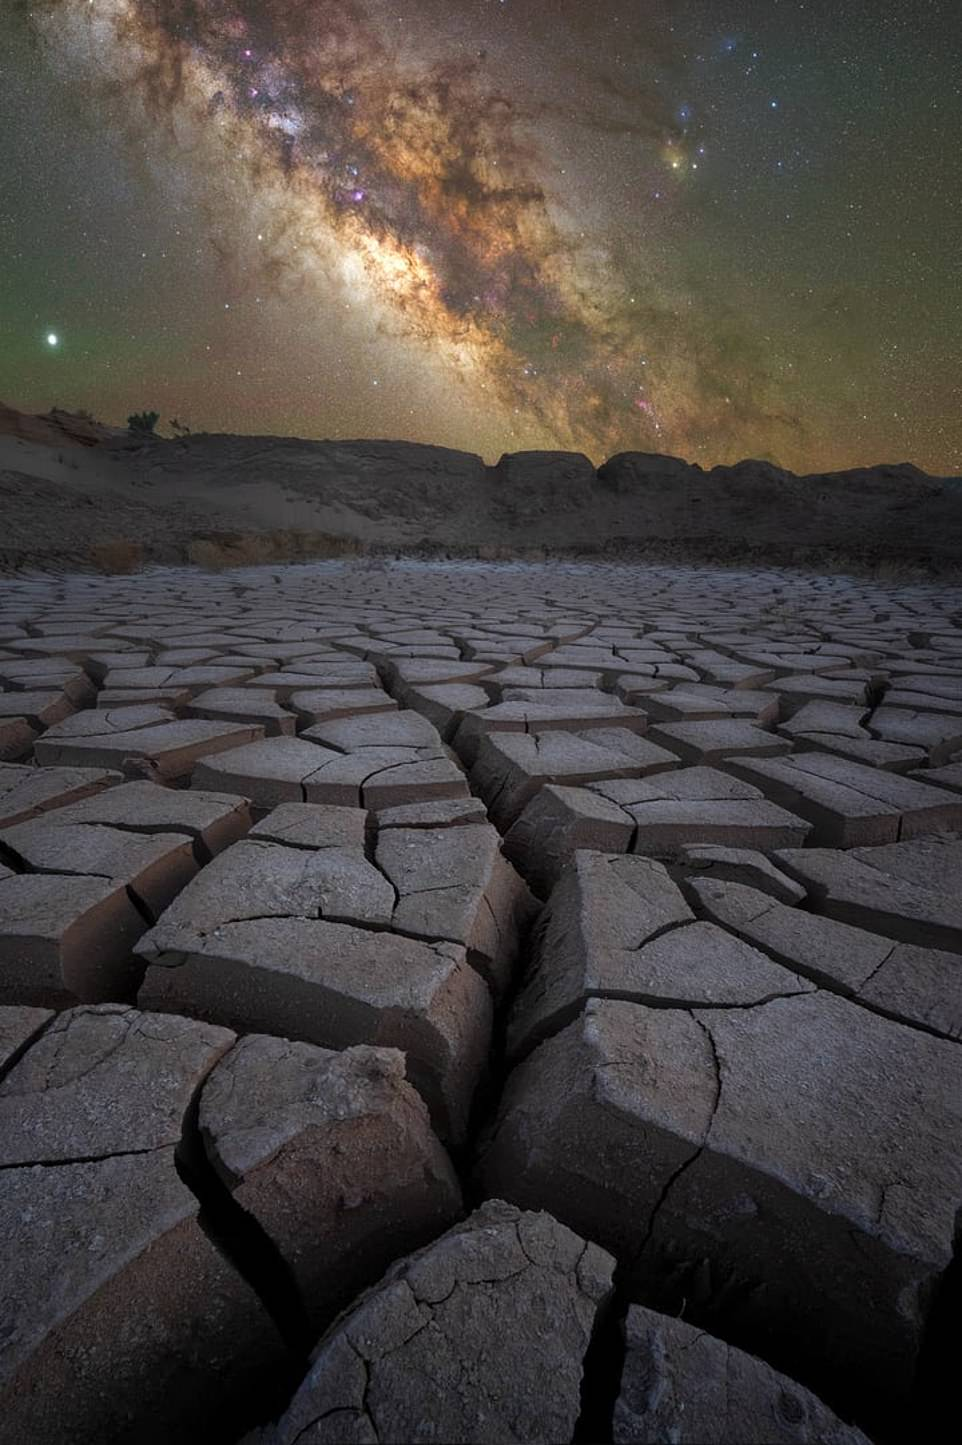 'Desolation'— by Phil Sisto in the Capitol Reef National Park, Utah. Mr Sisto said: 'This image was captured in the remote Cathedral Valley District of the park. I placed my camera low to the ground, exaggerating the otherworldly mud cracks with my wide-angle lens, and shot the sky with a longer lens as a panorama on my star tracker'